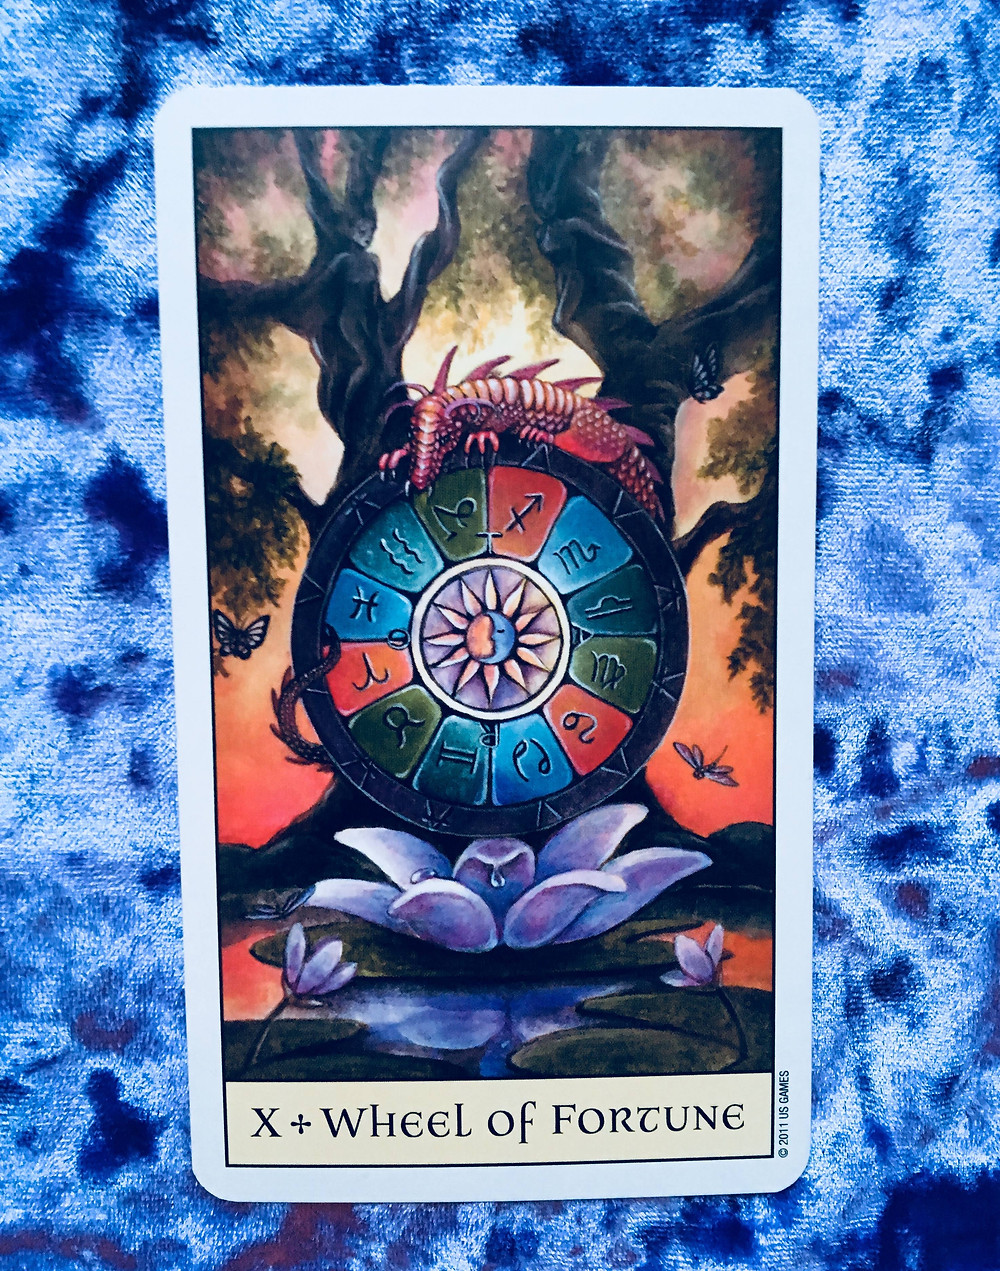 Tarot Card Meanings: The Wheel of Fortune